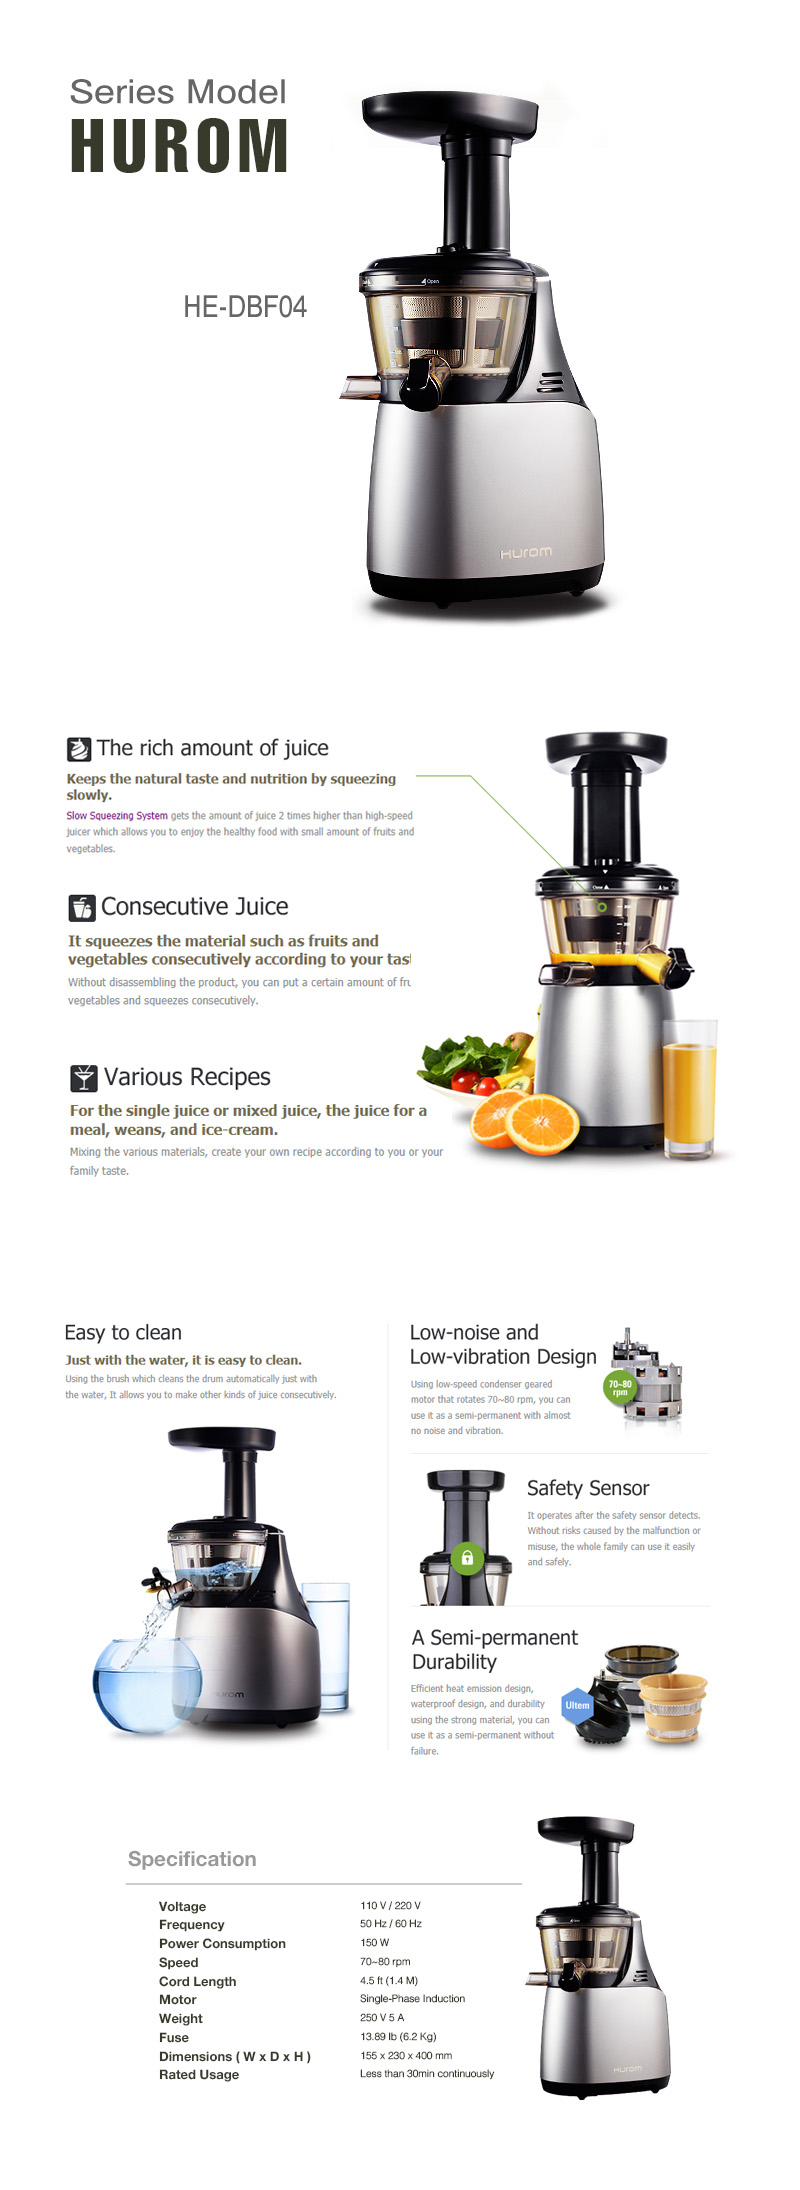 The Best Slow Juice Extractor : New HUROM HE-DBF04 Slow Juicer Extractor Fruit vegetable Citrus + Free Express eBay